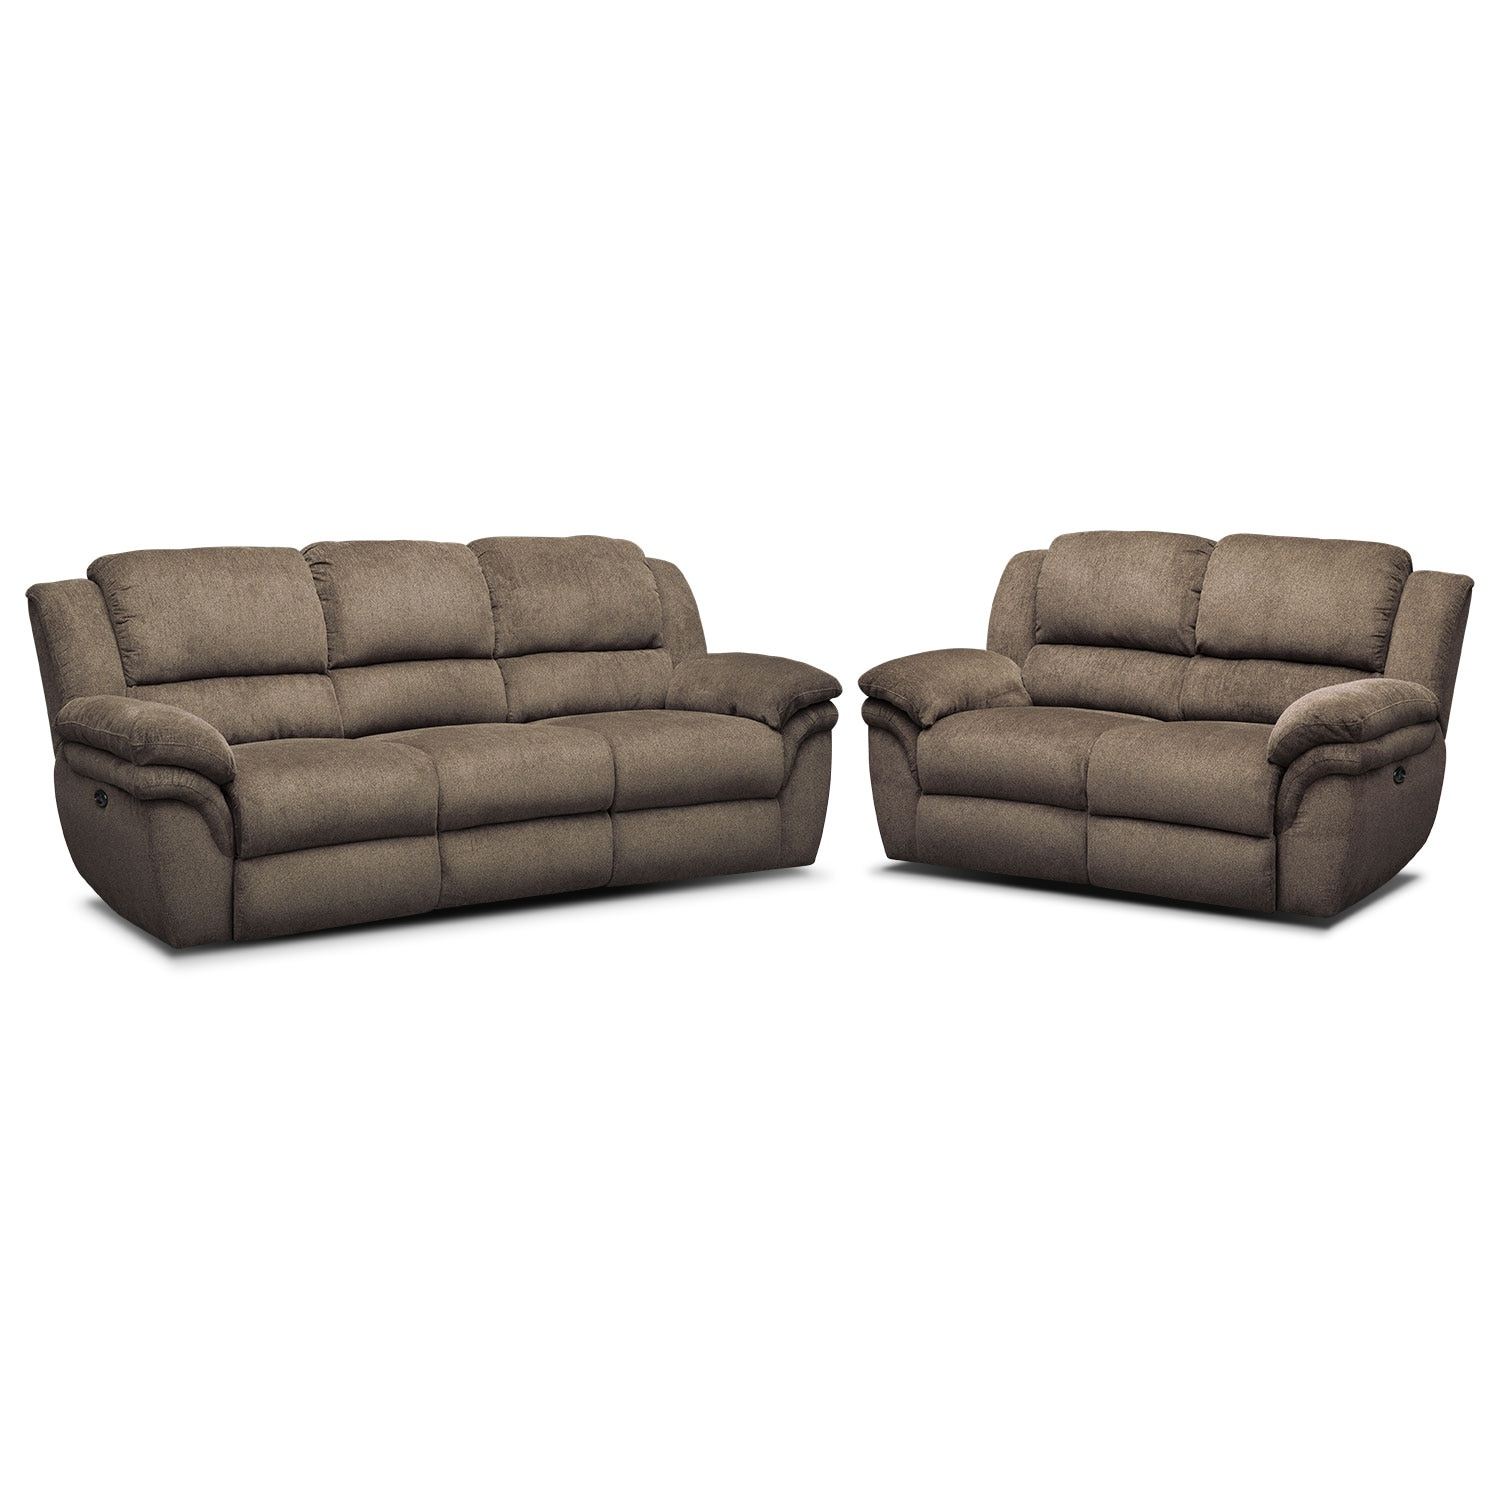 Aldo Power Reclining Sofa And Loveseat Set Mocha